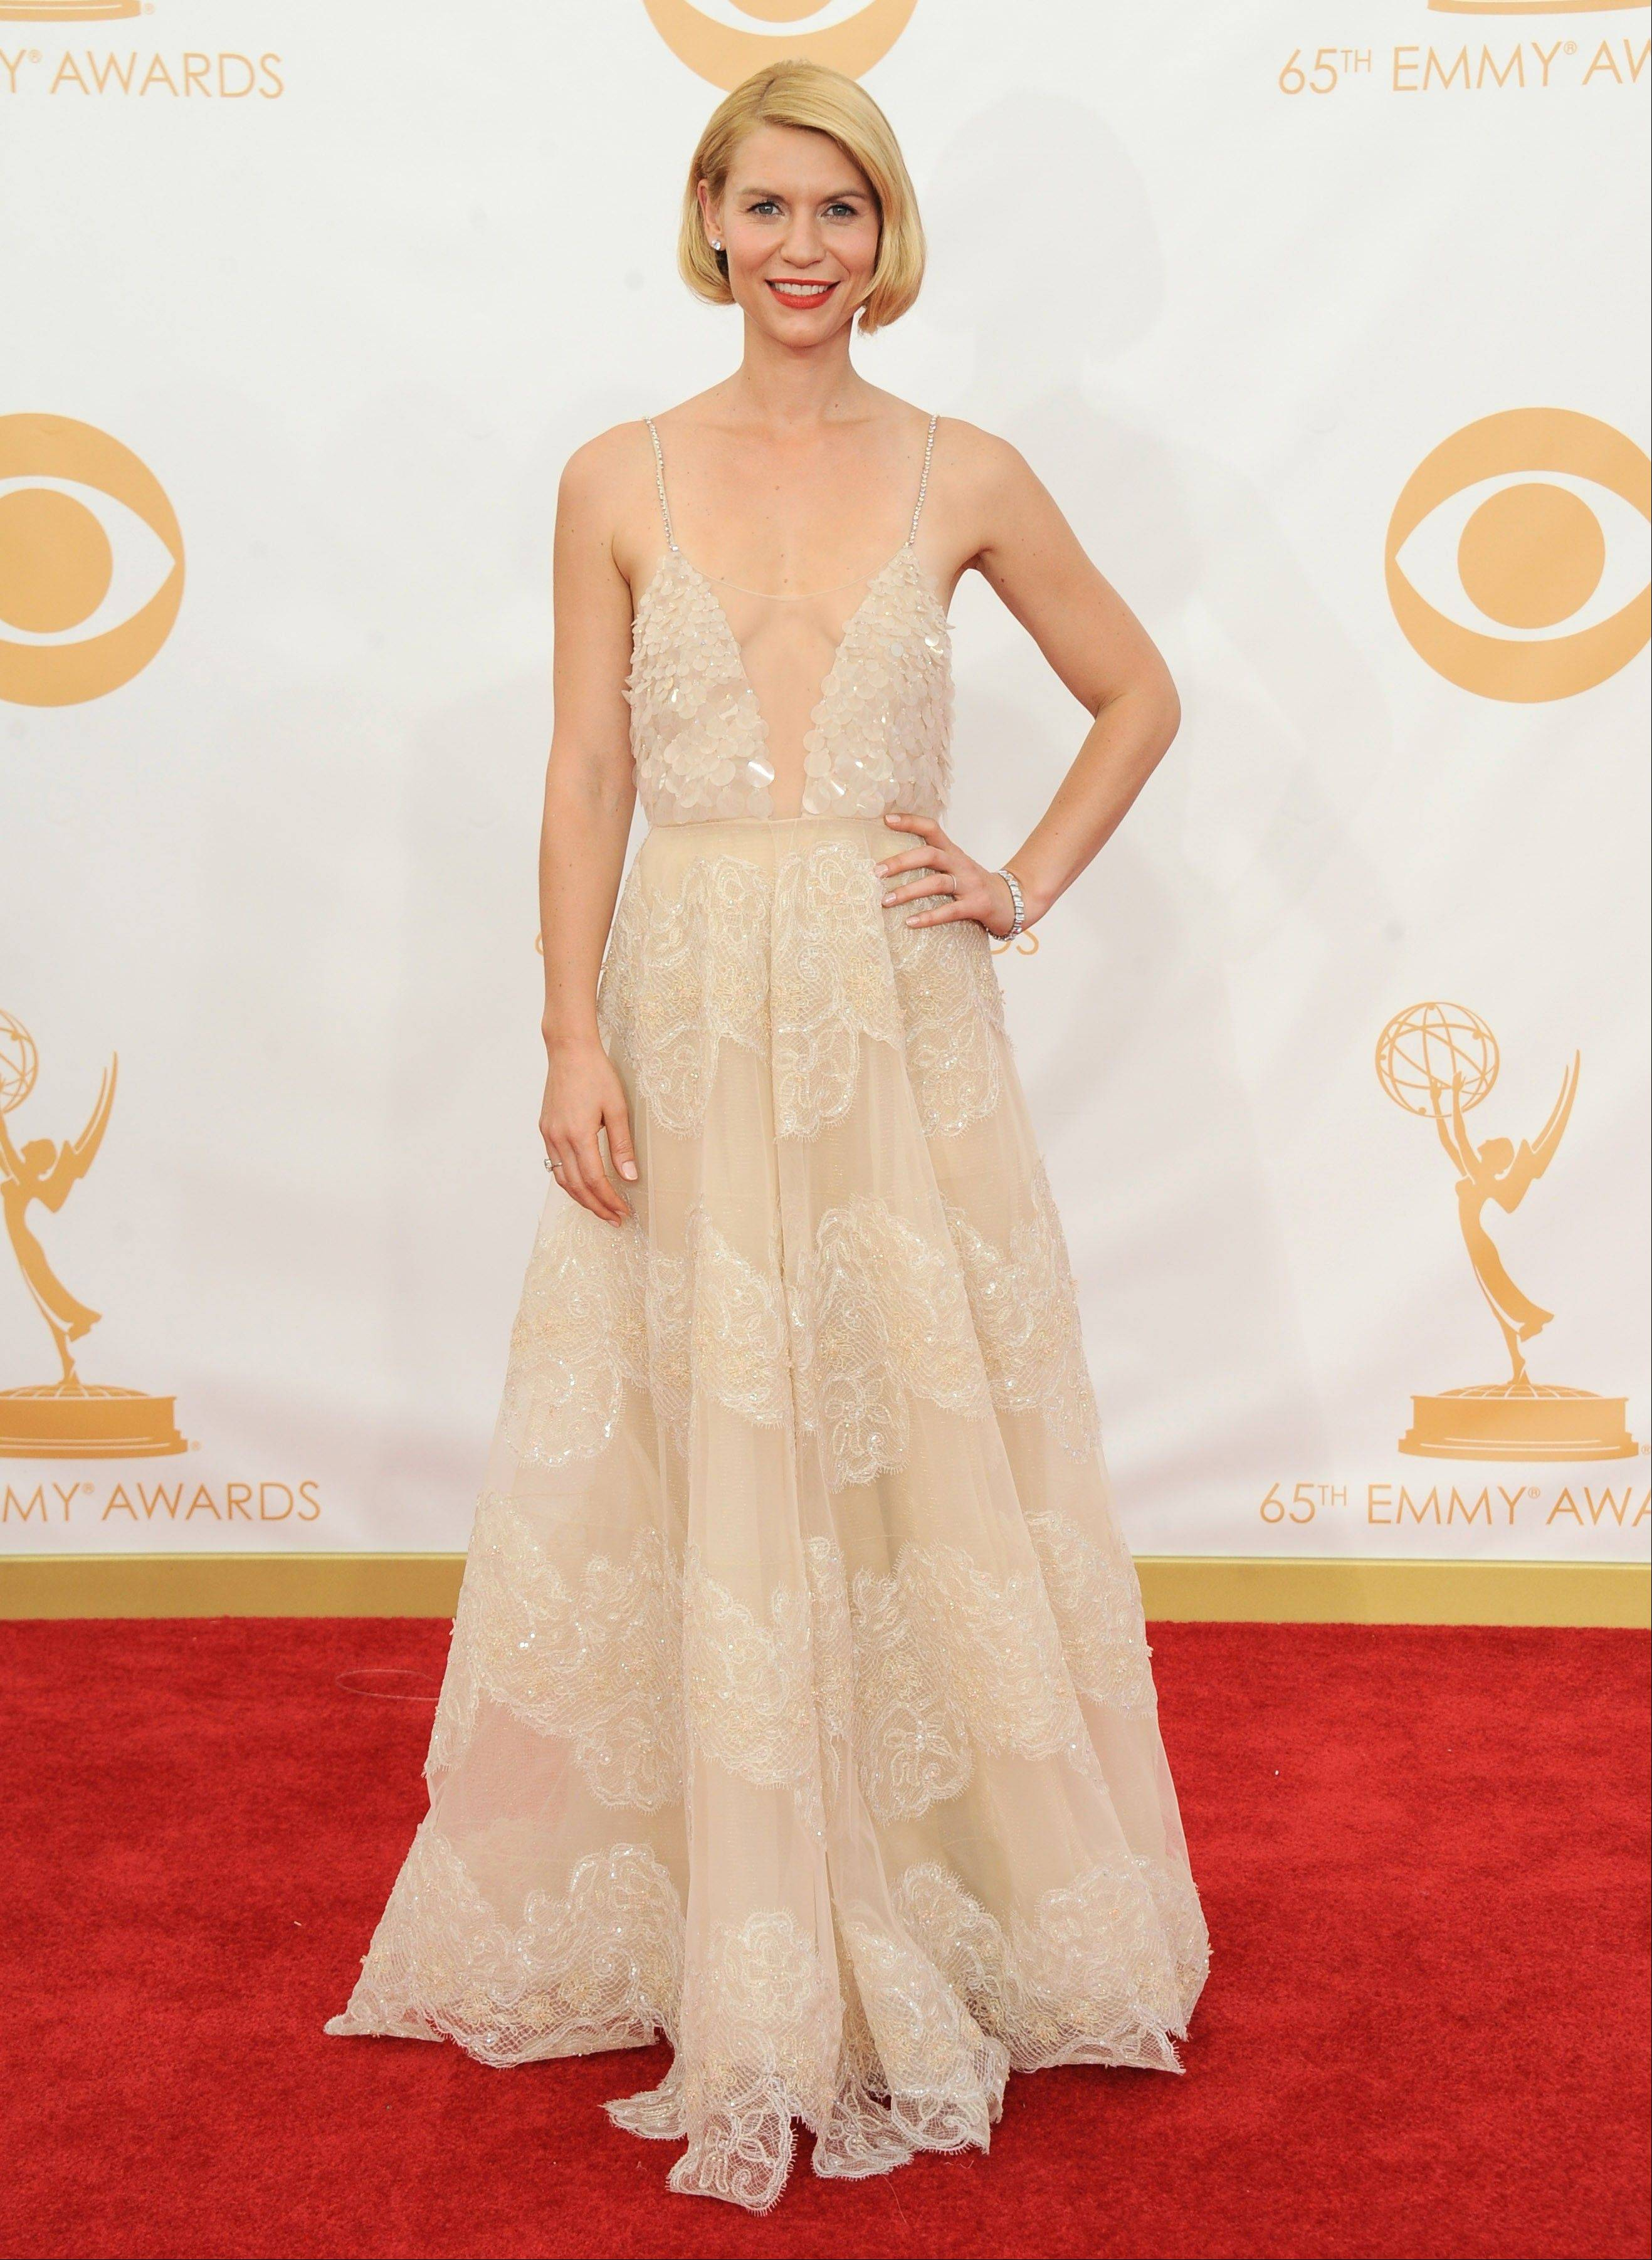 Claire Danes, wearing Atelier Versace, arrives at the 65th Primetime Emmy Awards at Nokia Theatre on Sunday in Los Angeles.